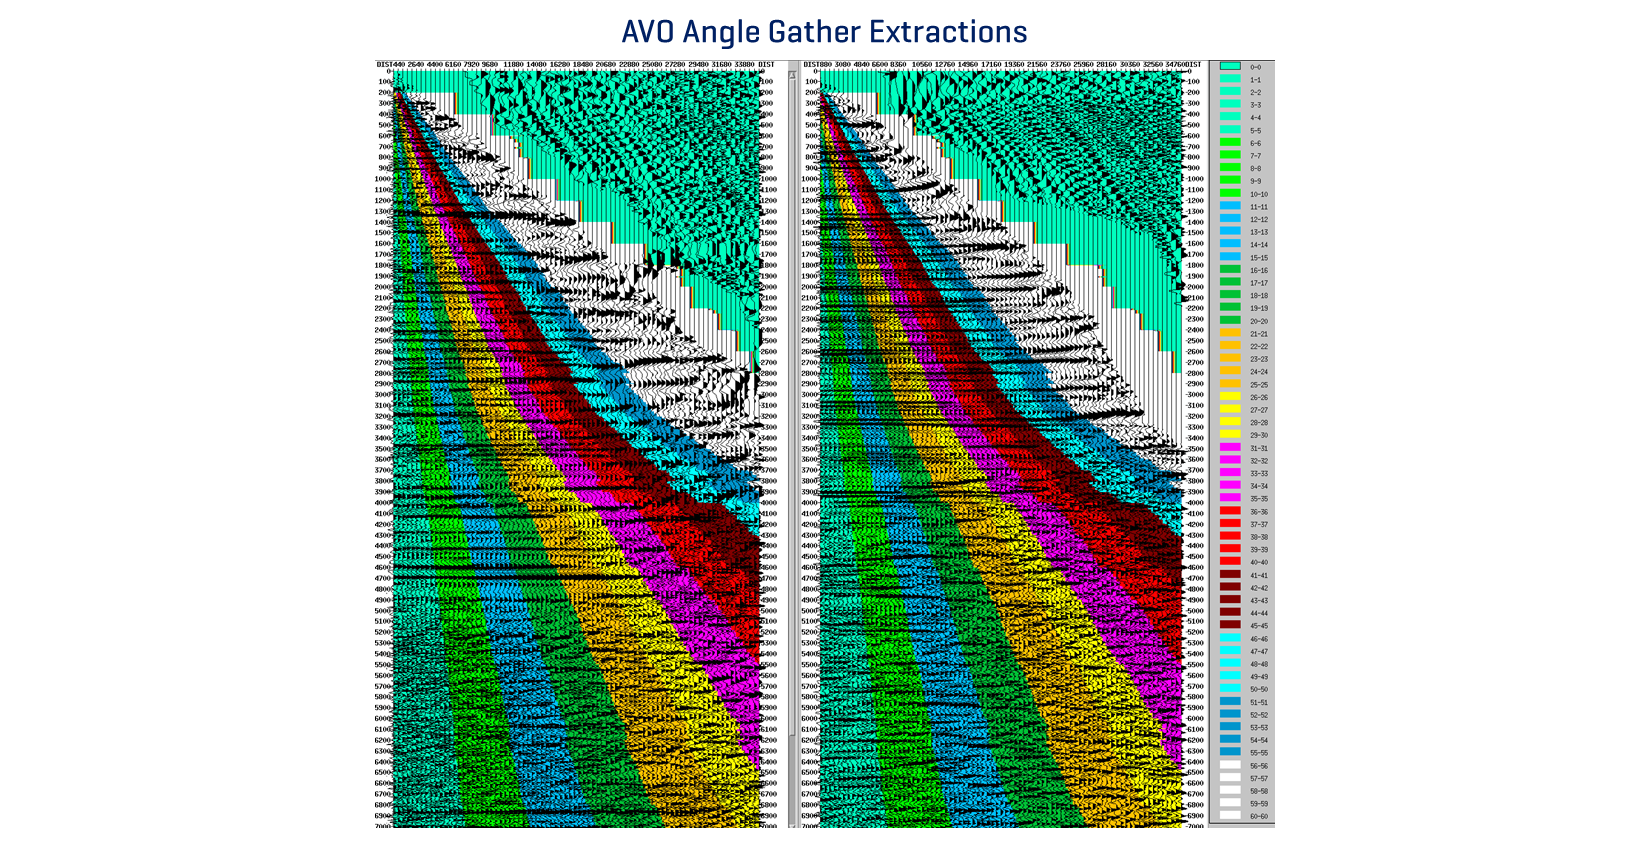 PT AVO Angle Extractions